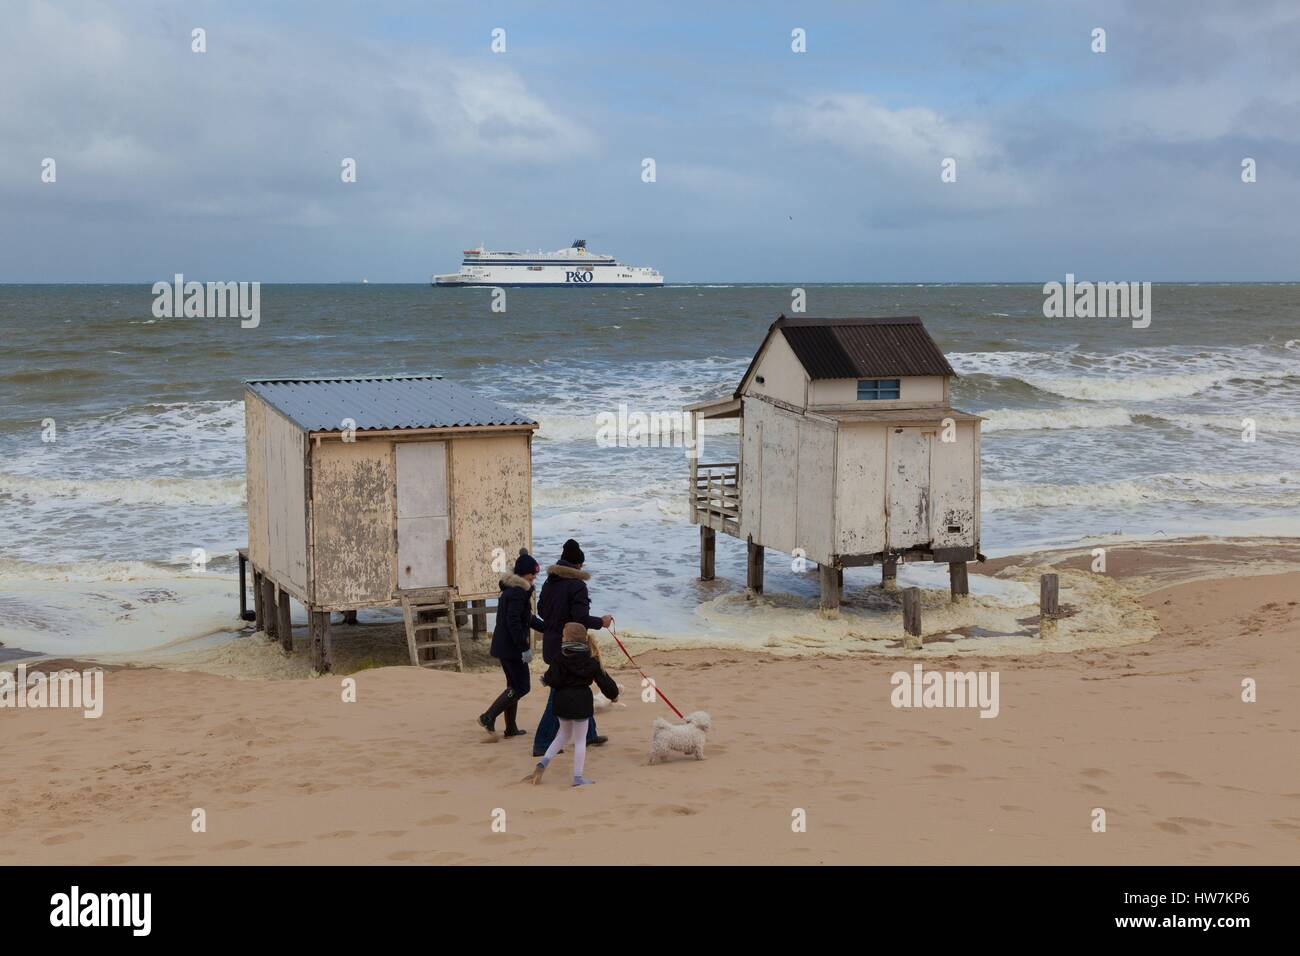 France, Pas de Calais, Calais, beach huts affected by the sea during high tides - Stock Image